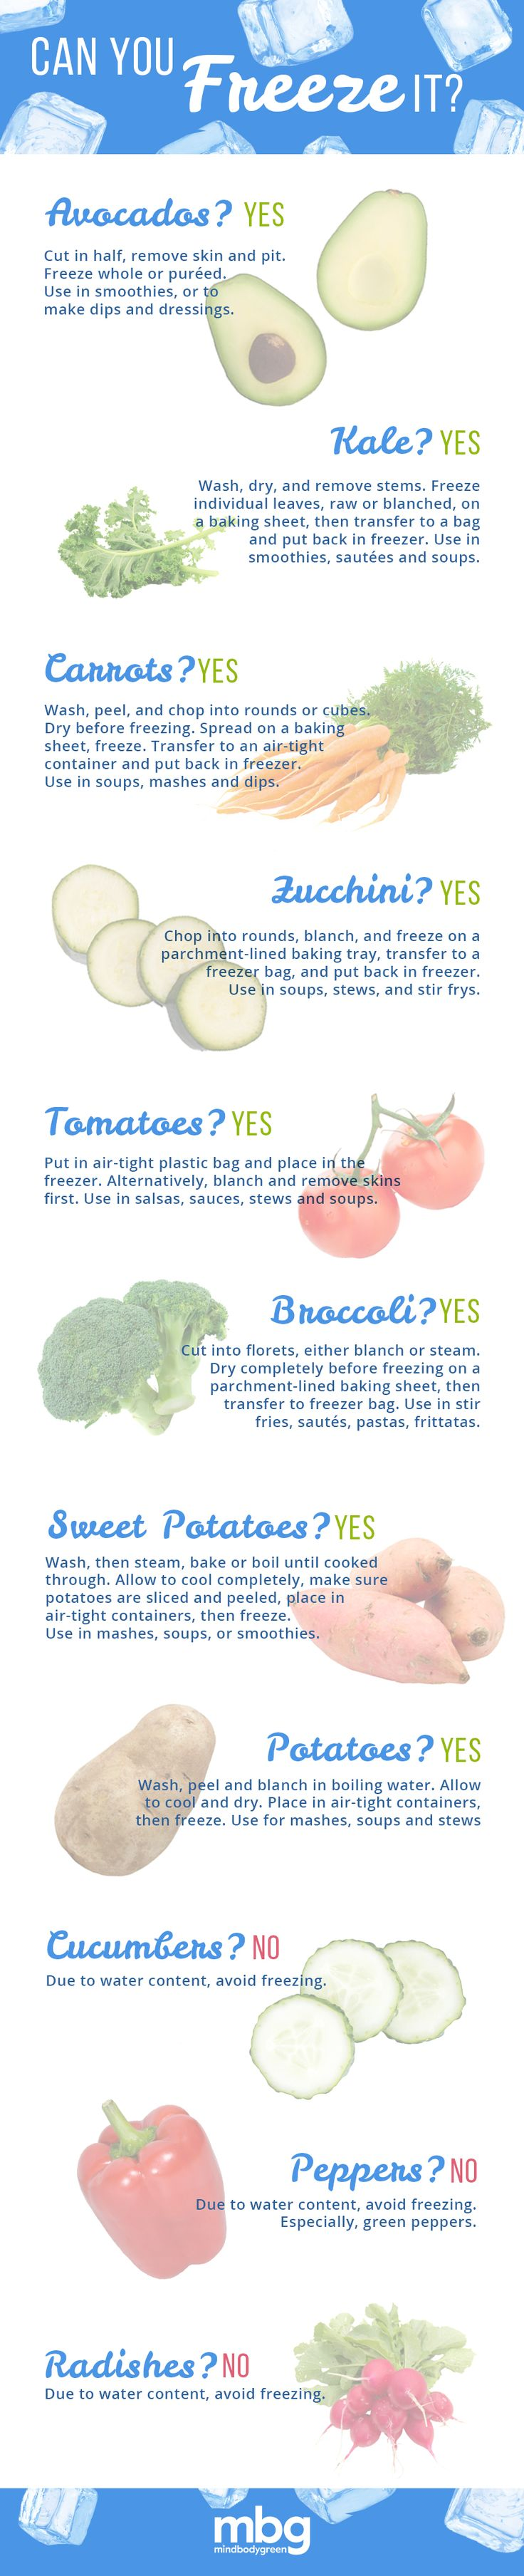 Unsure if your favorite vegetable can be preserved in the freezer? Click in for Mind Body Green's guide on which veggies are freezer-safe and how to keep them that way.